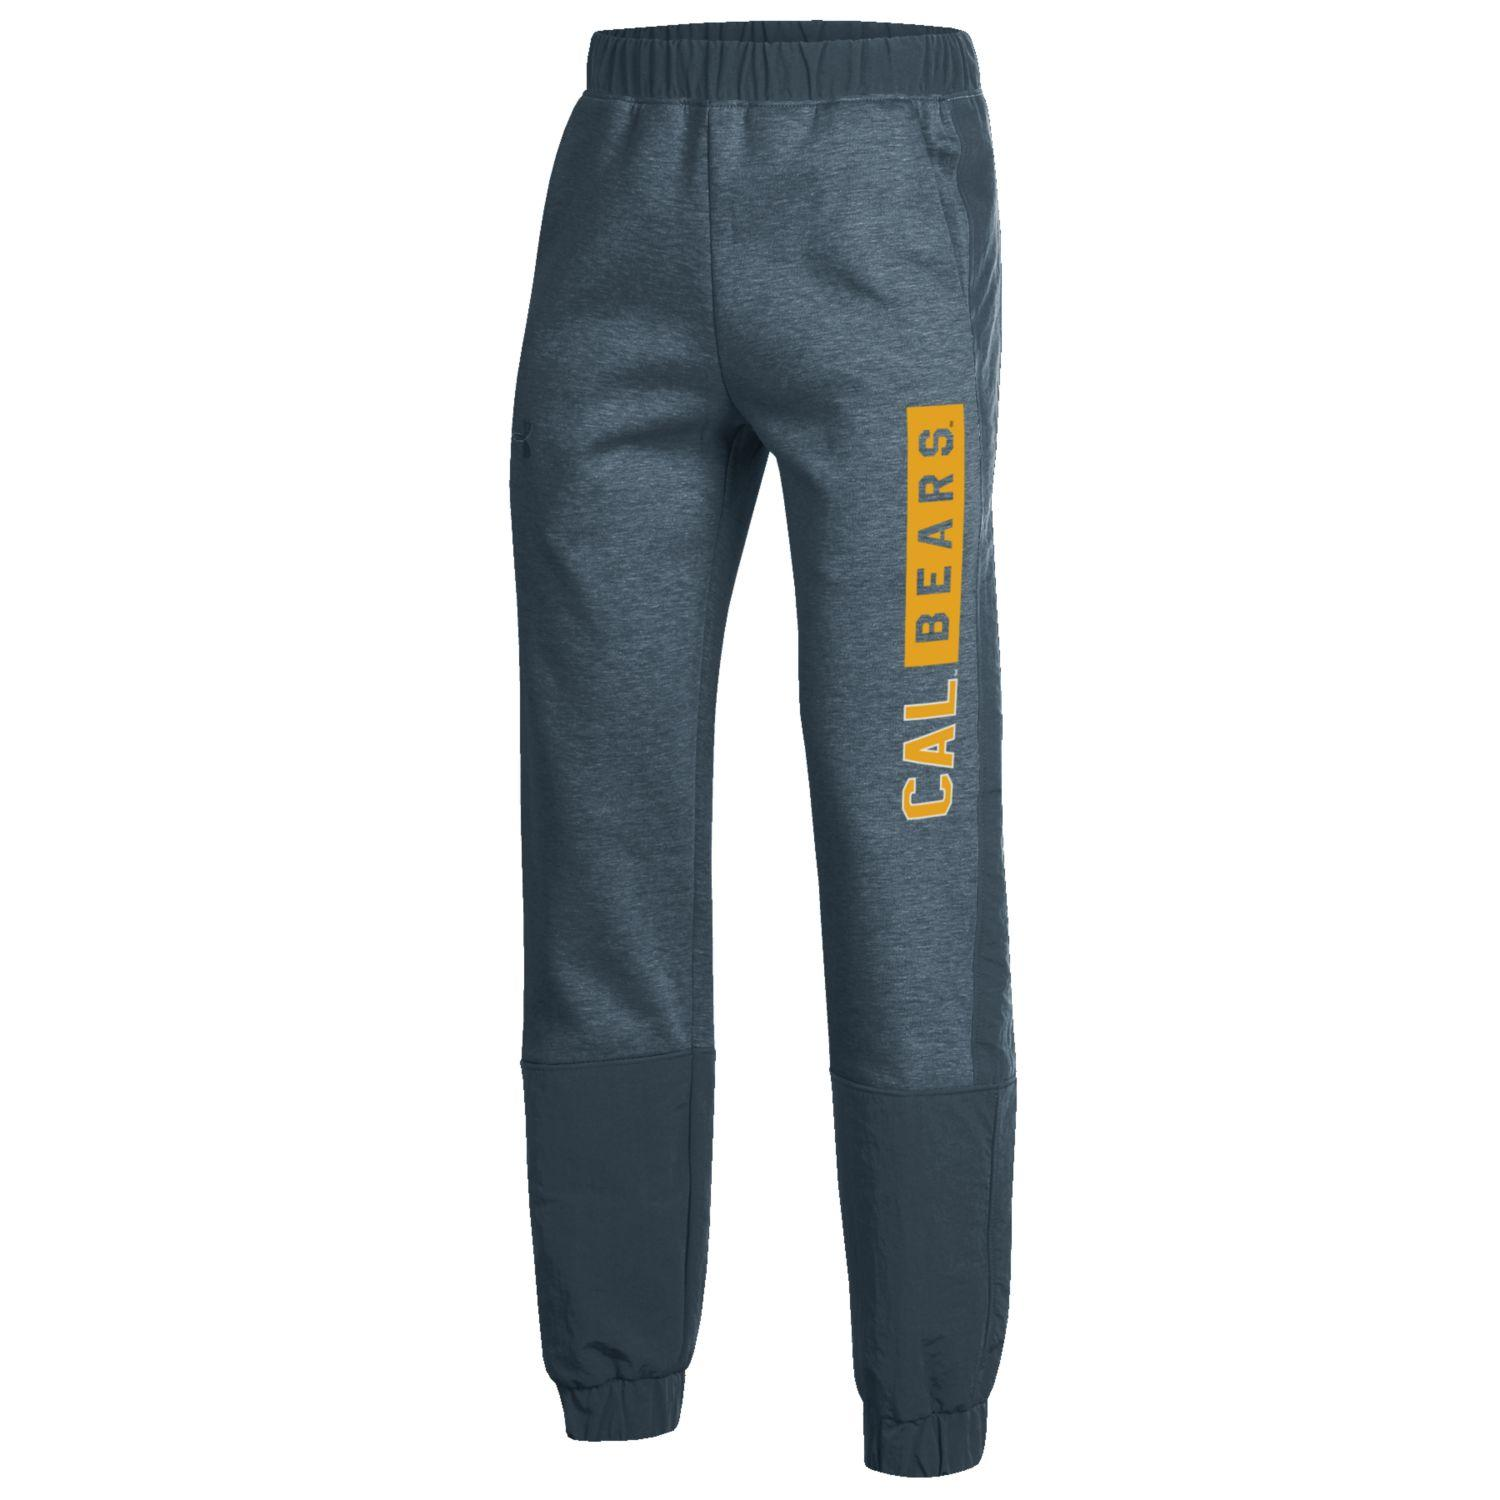 Youth Boy's Knod Pant Under Armour